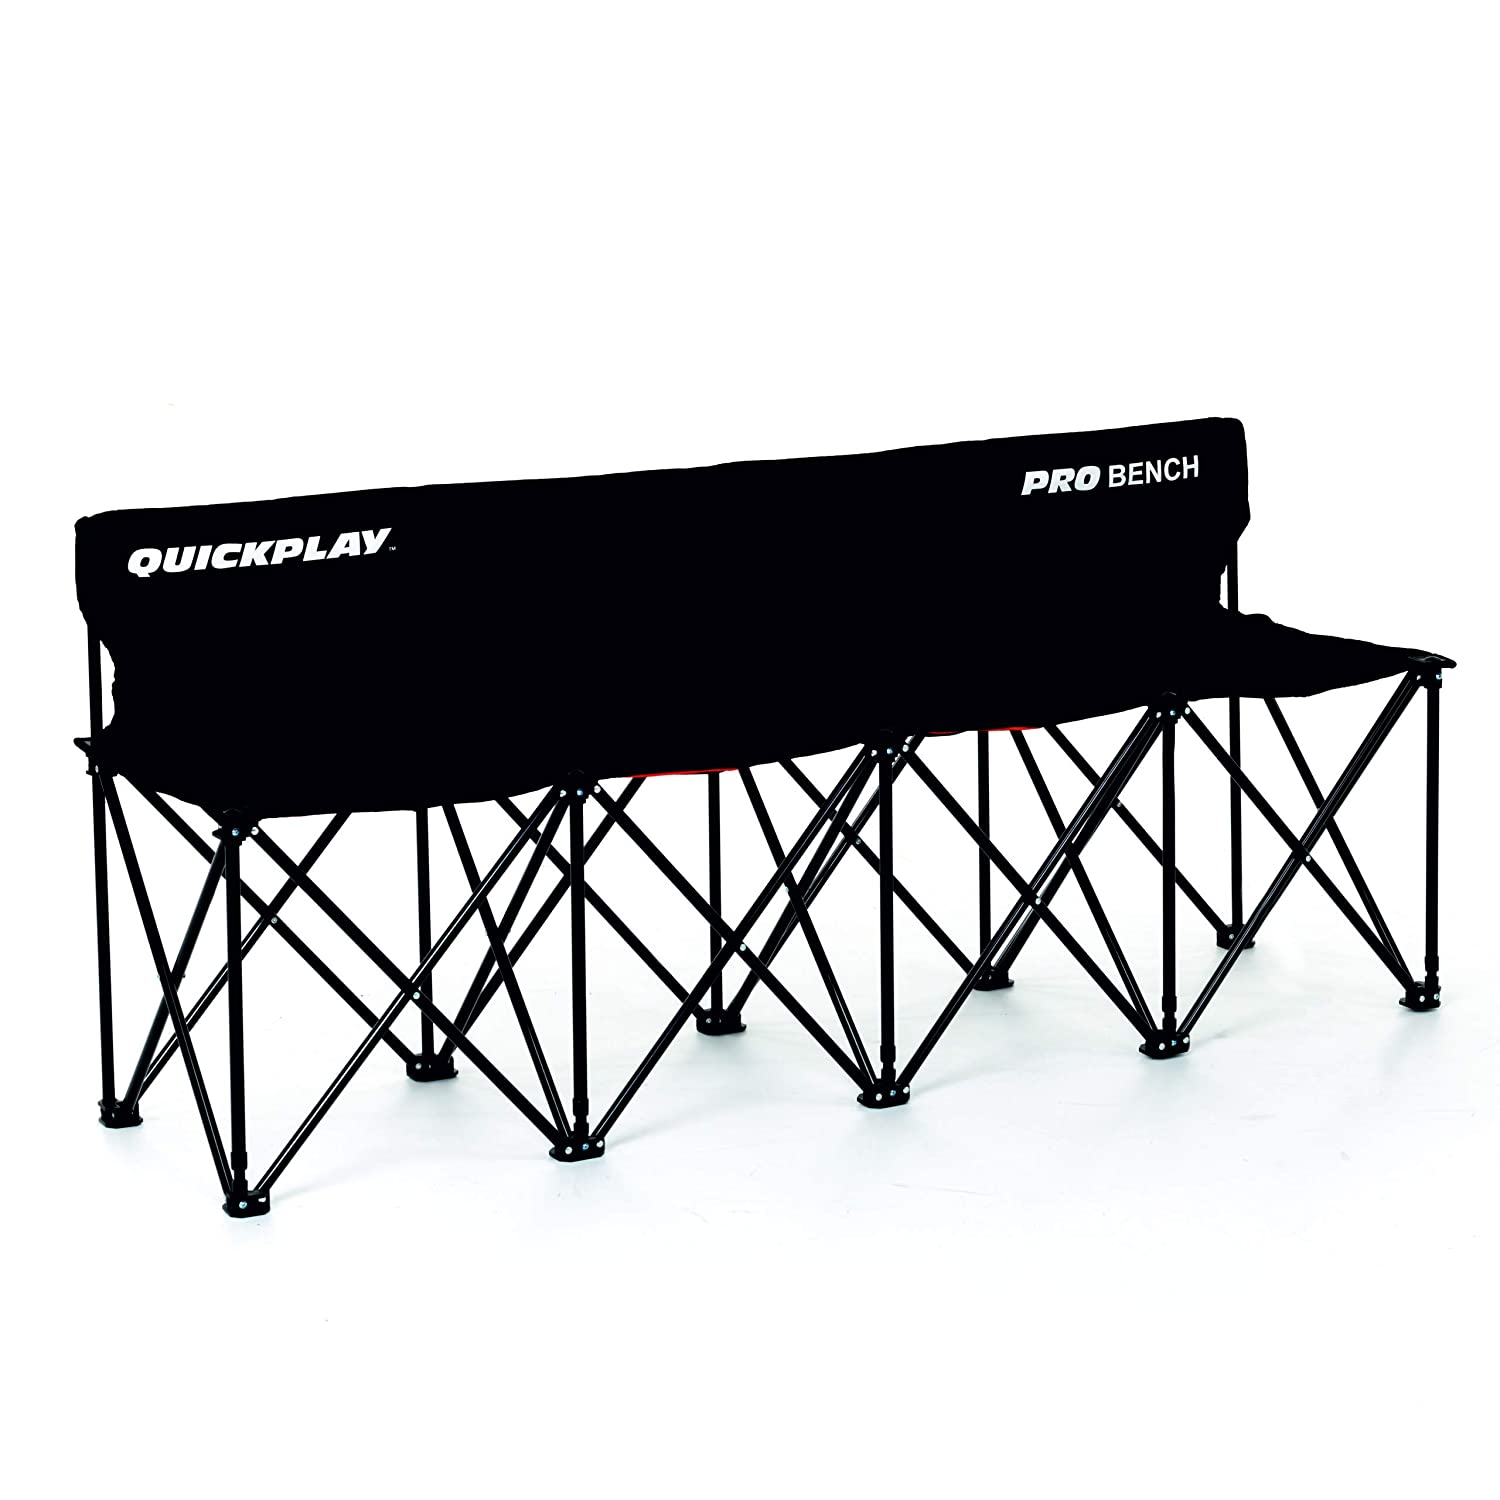 Stupendous Quickplay Pro Folding Bench 4 Seats 6 Seats 9 Seats New 2019 Model Build To Last Sideline Bench Soccer Bench Or Sports Team Bench Creativecarmelina Interior Chair Design Creativecarmelinacom